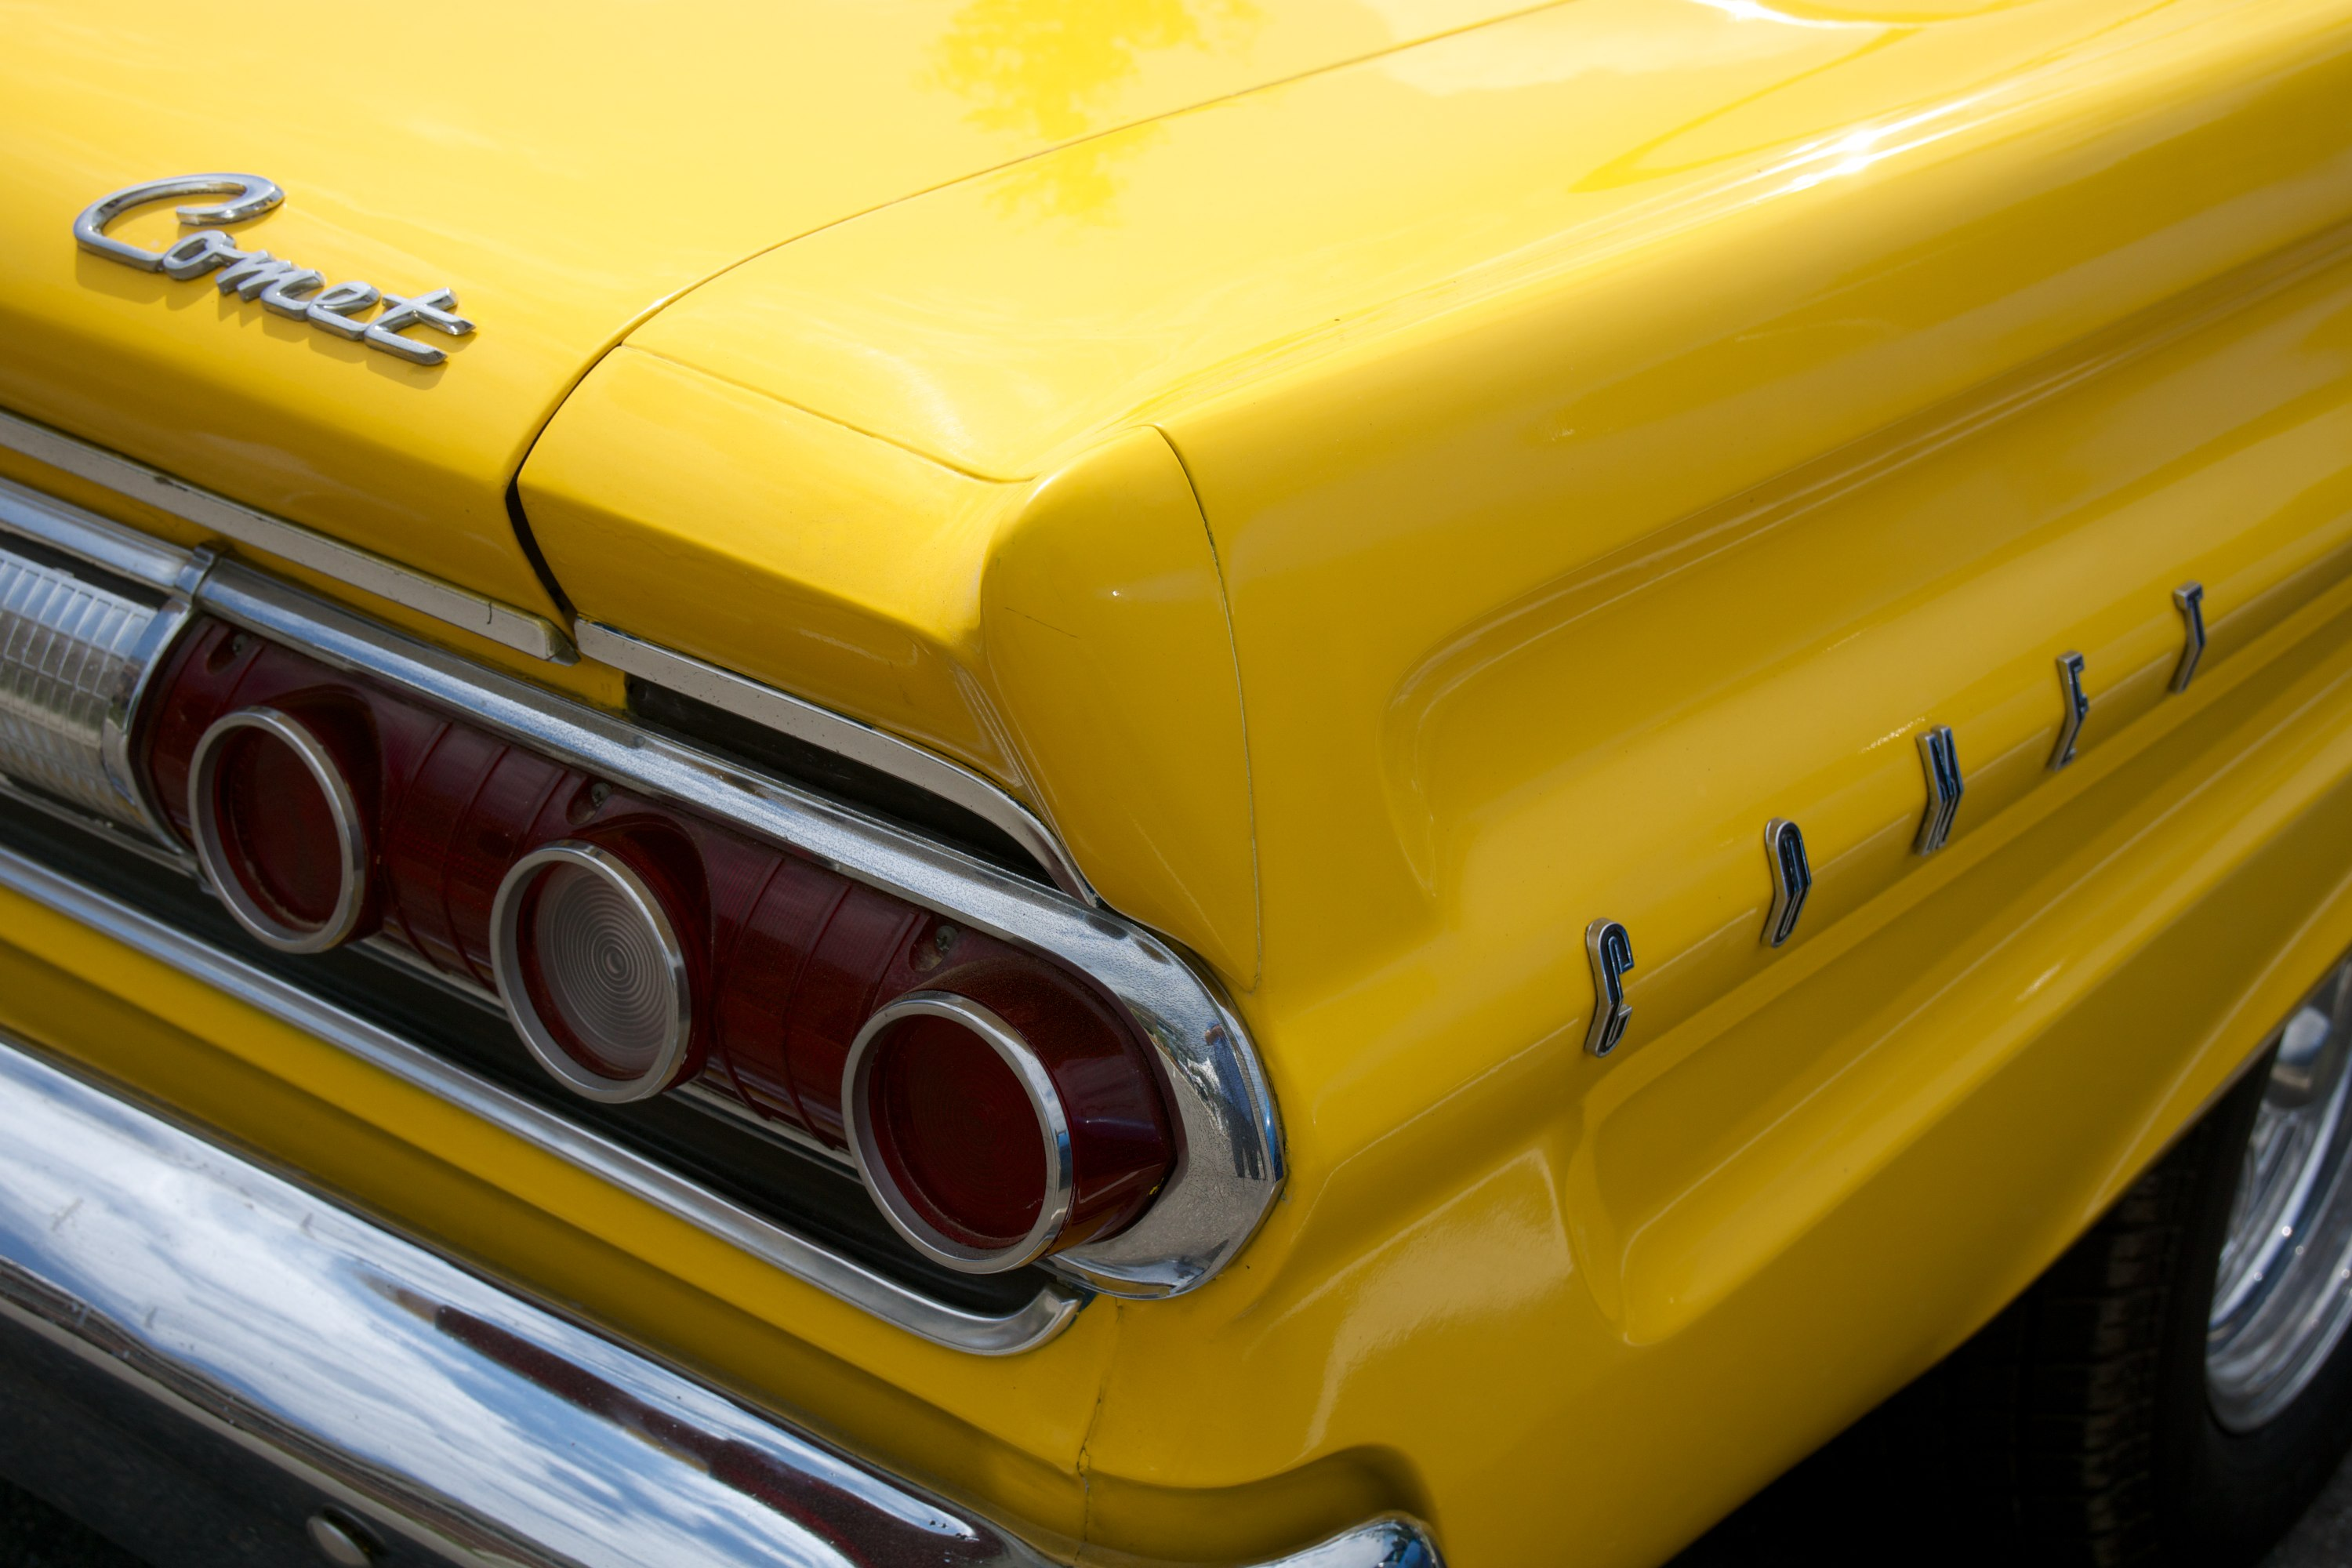 1964 Mercury Comet, Car, Indoor, Lines, Vehicle, HQ Photo